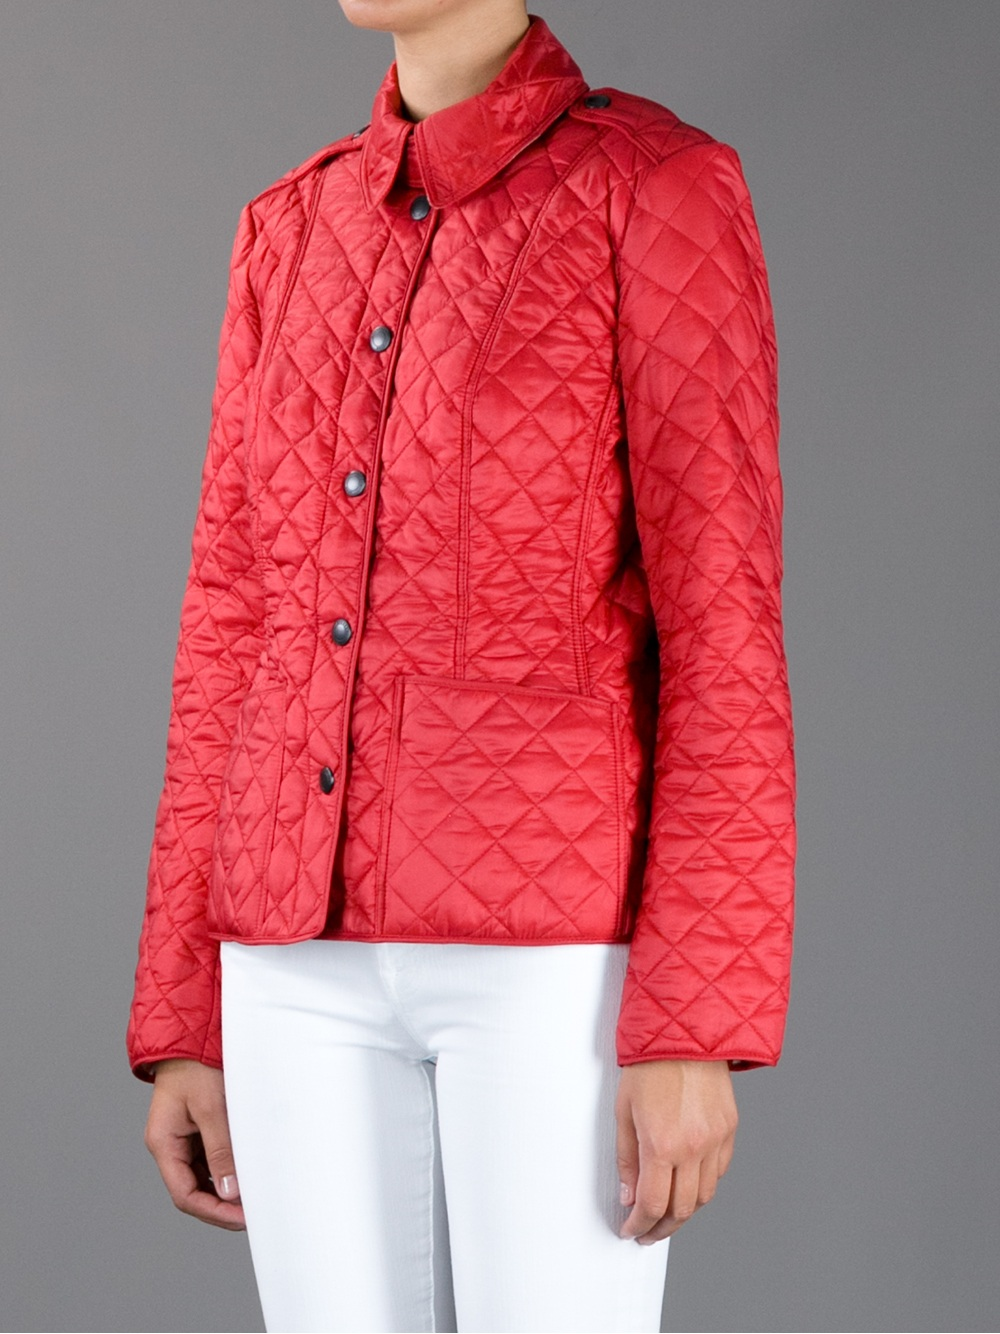 Women's Quilted Jackets Lady-like chic in one easy step. Steal the Duchess of Cambridge's style with a classic look, beautifully executed jackets by Barbour, Joules or Lavenham.